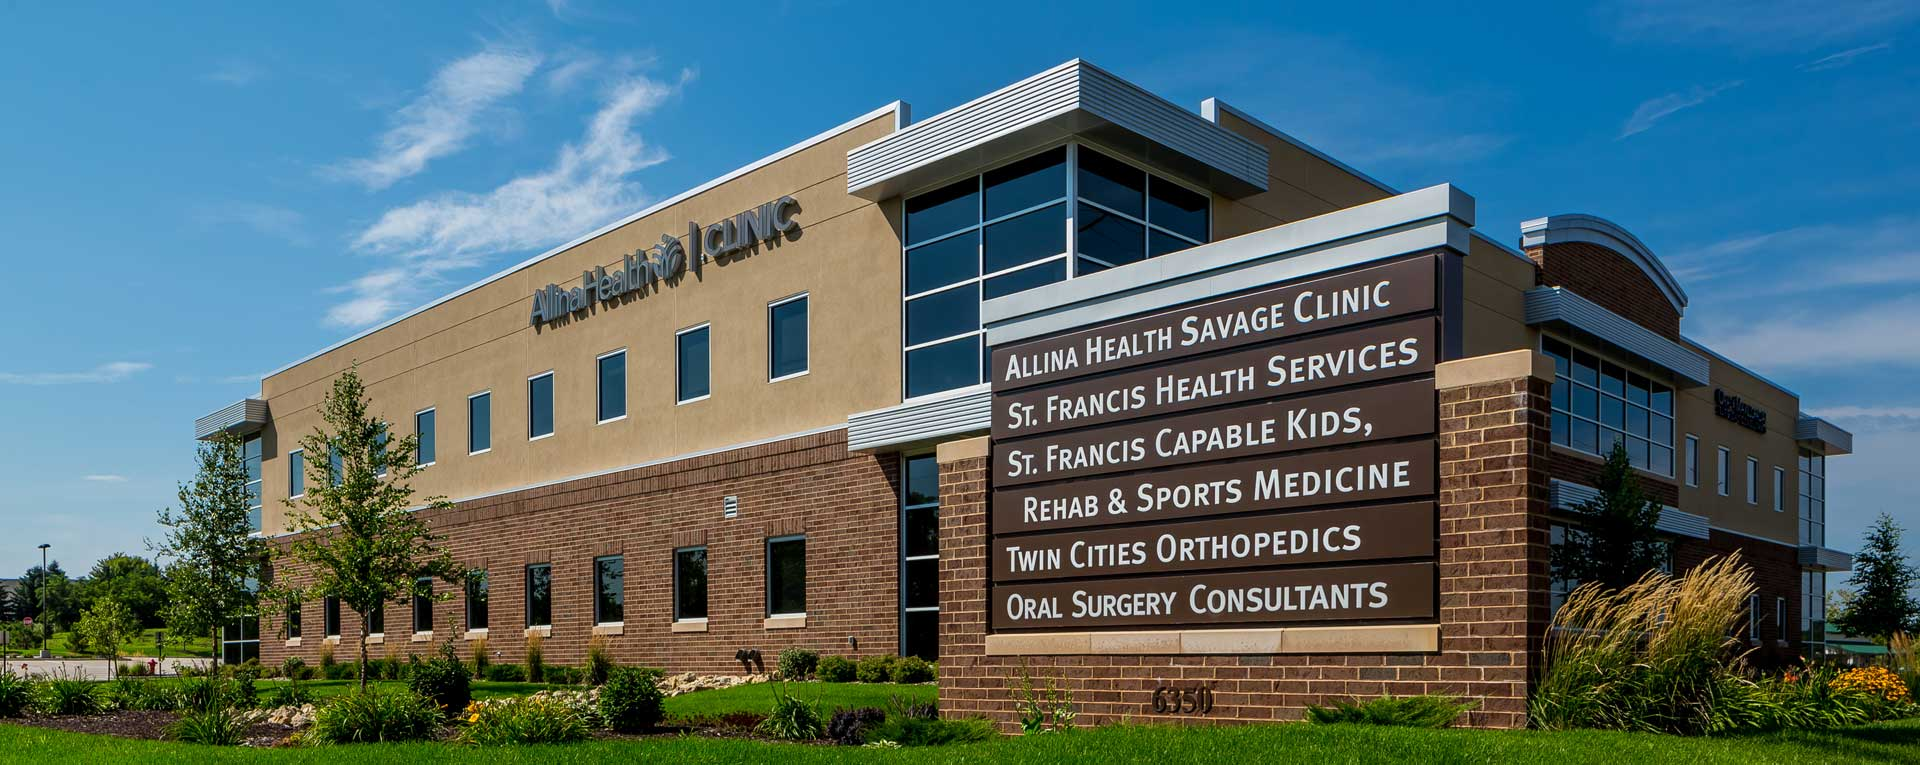 Allina Health Savage Clinic - Savage, MN